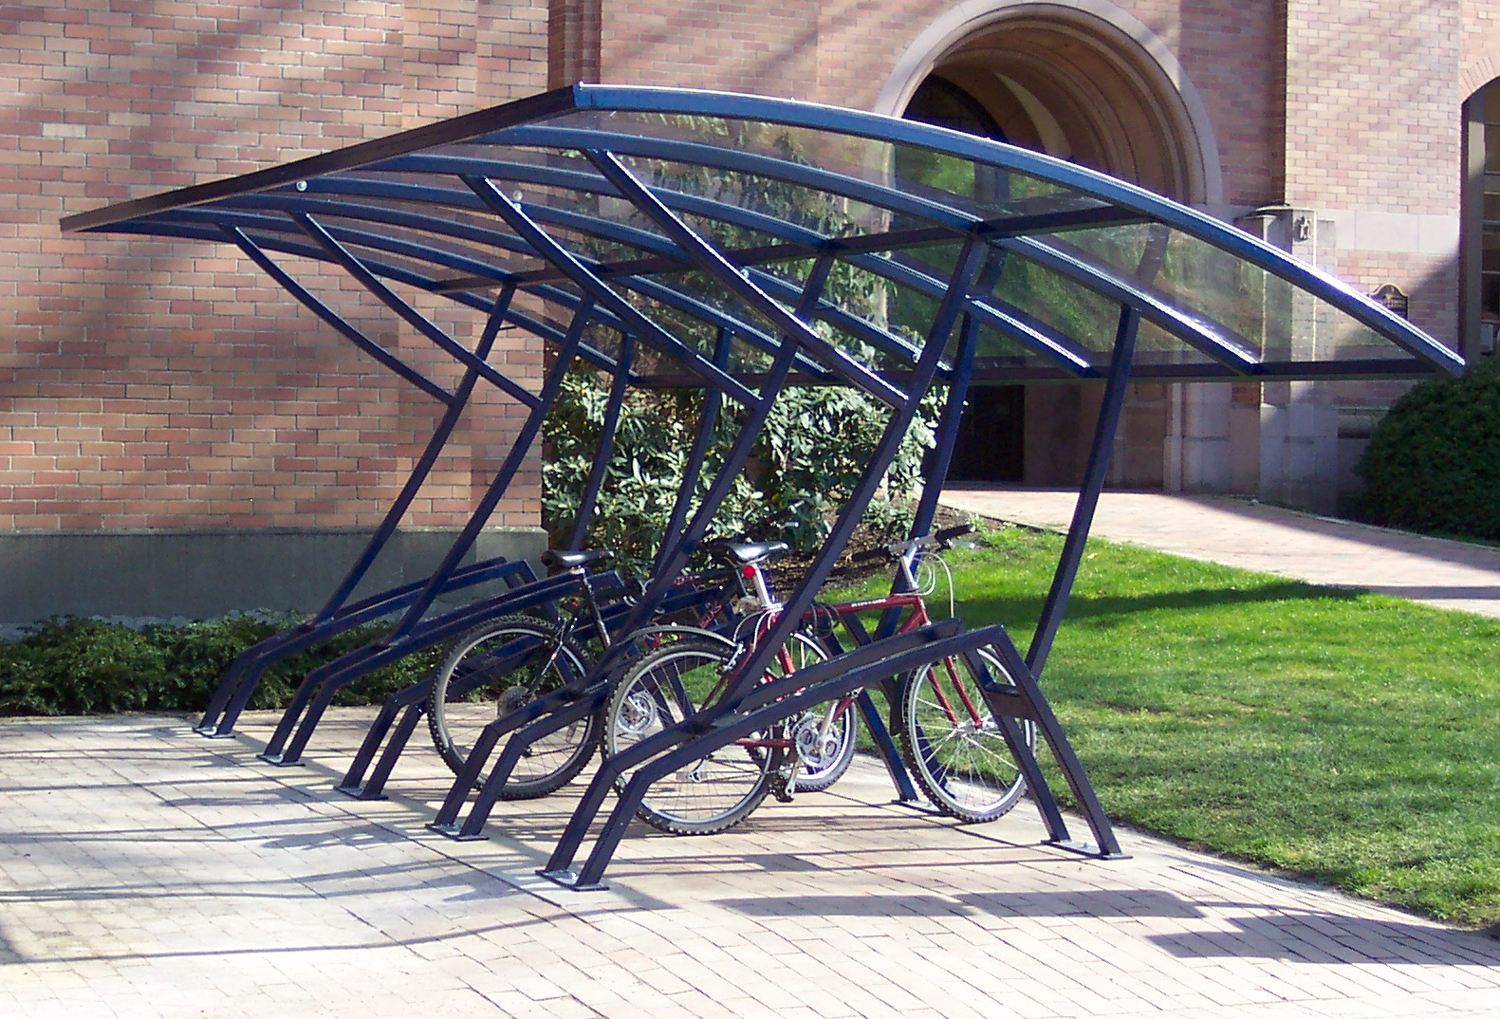 Covered Bike Shelters : Bike shelter at wwu by wade west coroflot